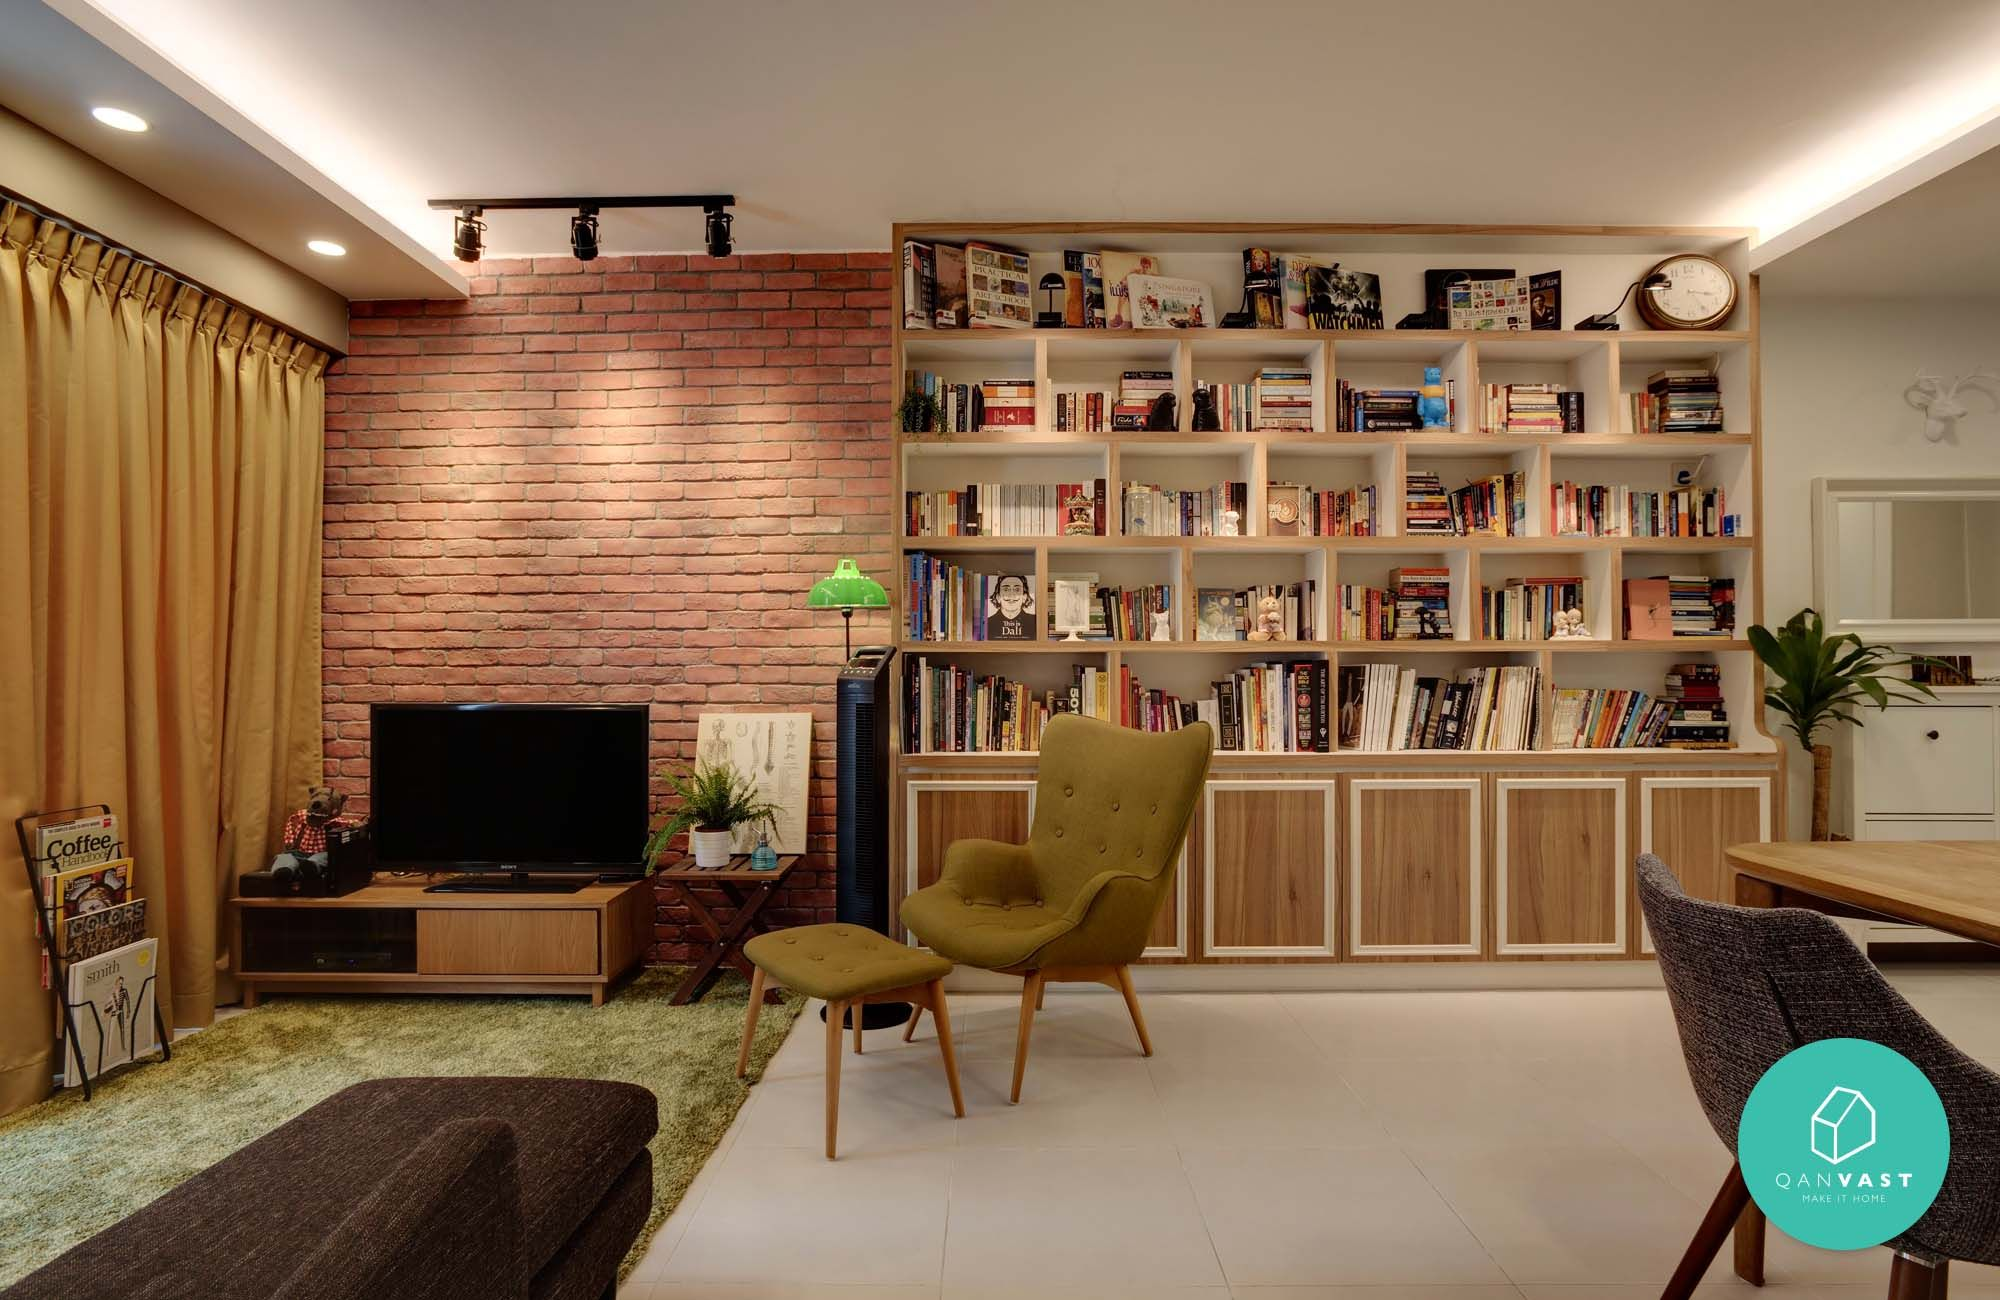 10 Most Voted Hdb Condo Homes Brick Feature Wall Ceiling And Bricks